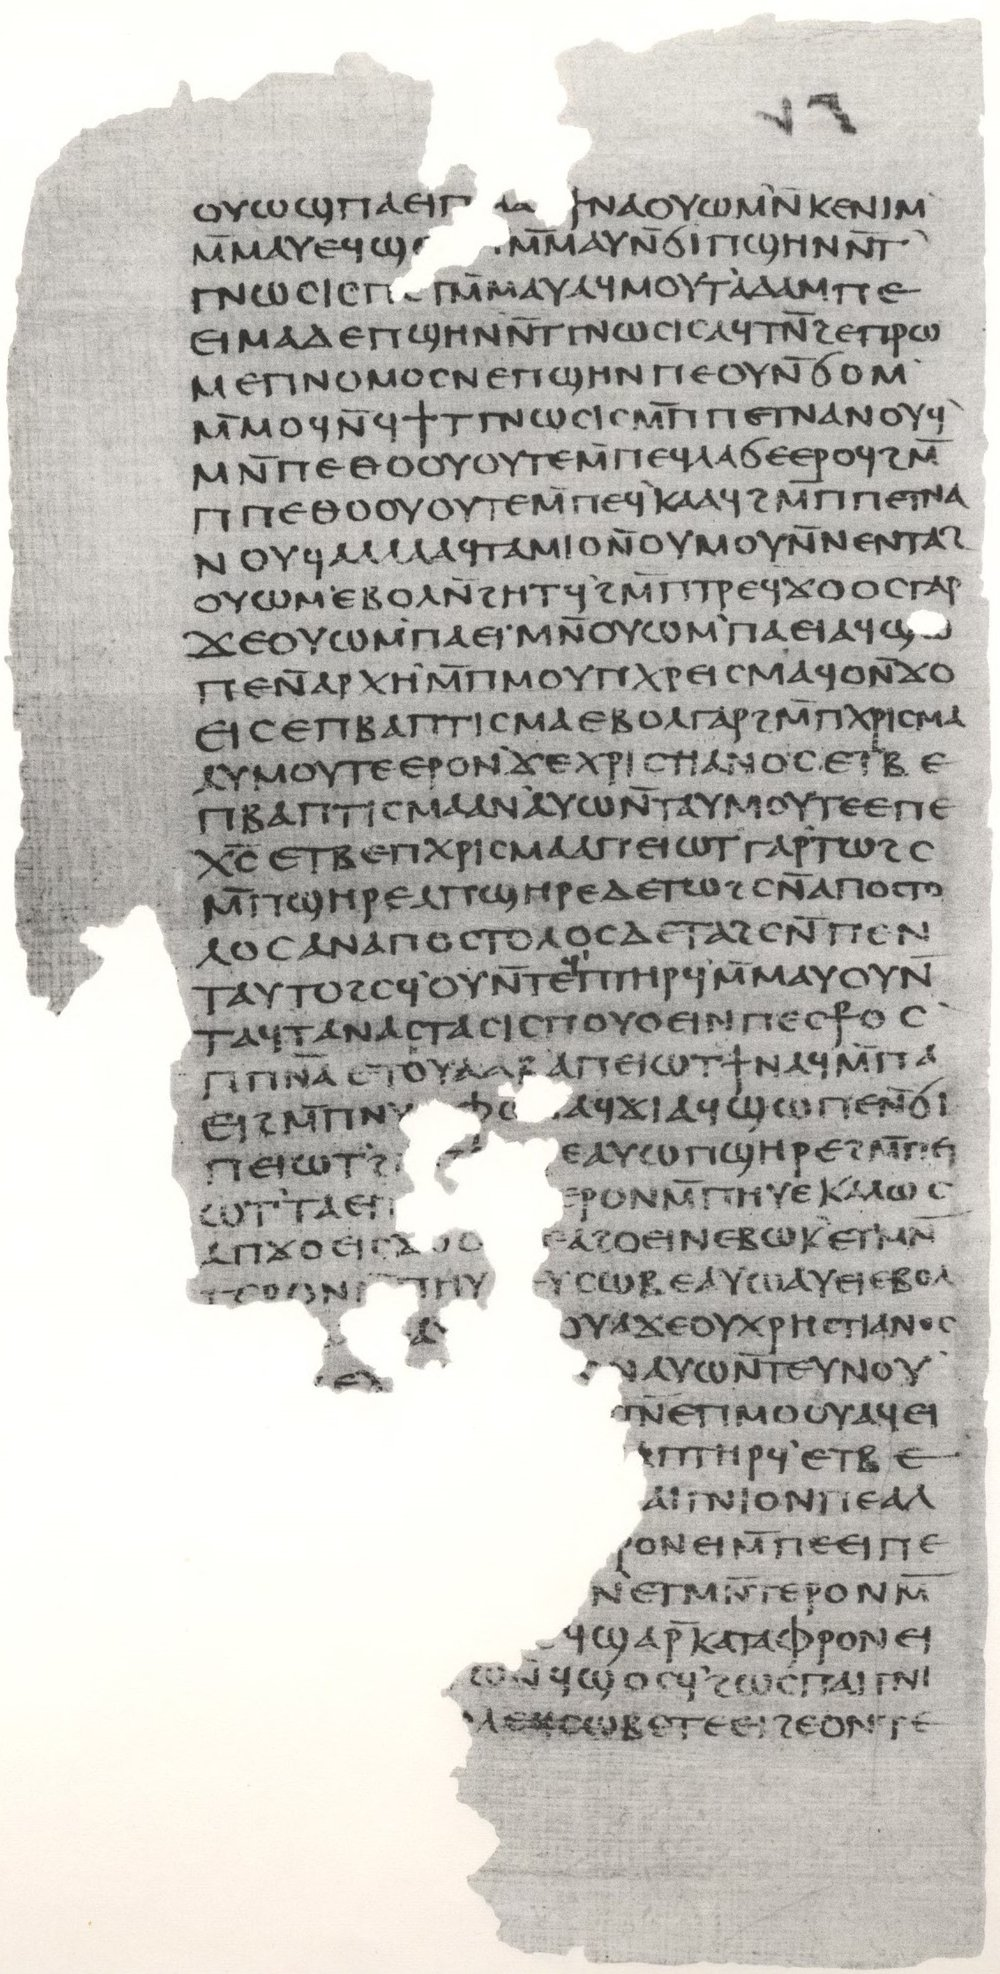 Gospel_of_Philip_facsimile_Page_74.jpg